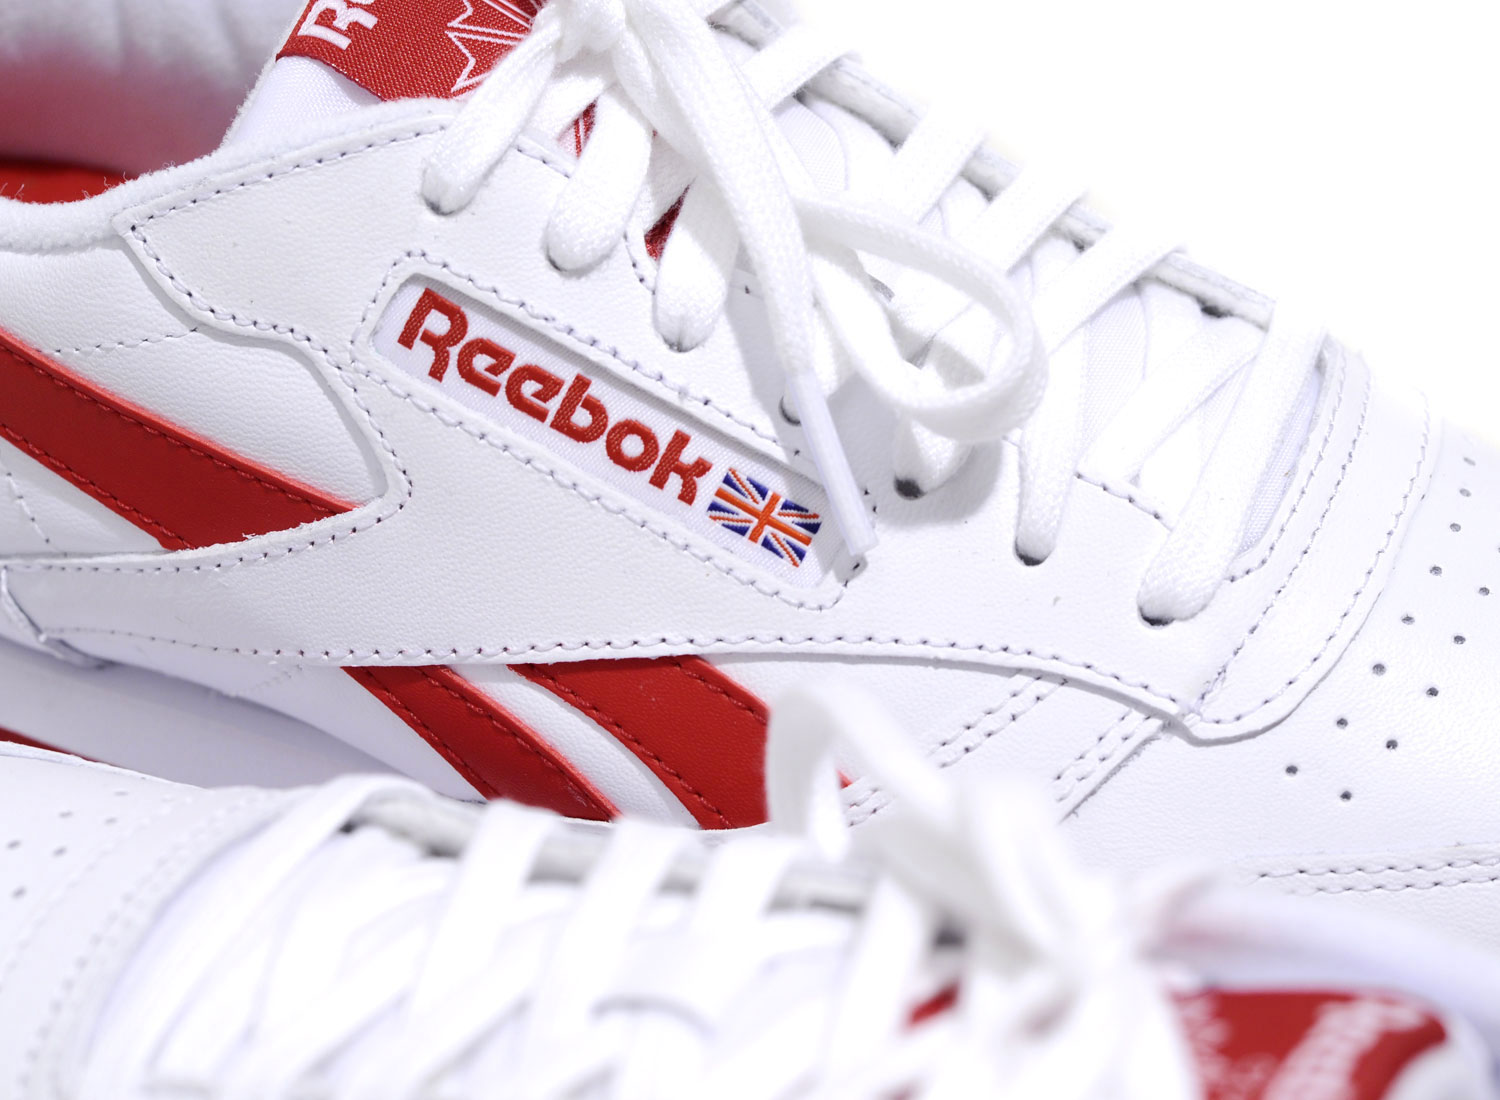 e1dd4ed3b Reebok Classic Leather Ripple Low White / Red BS8299 / Soldes / Novoid Plus